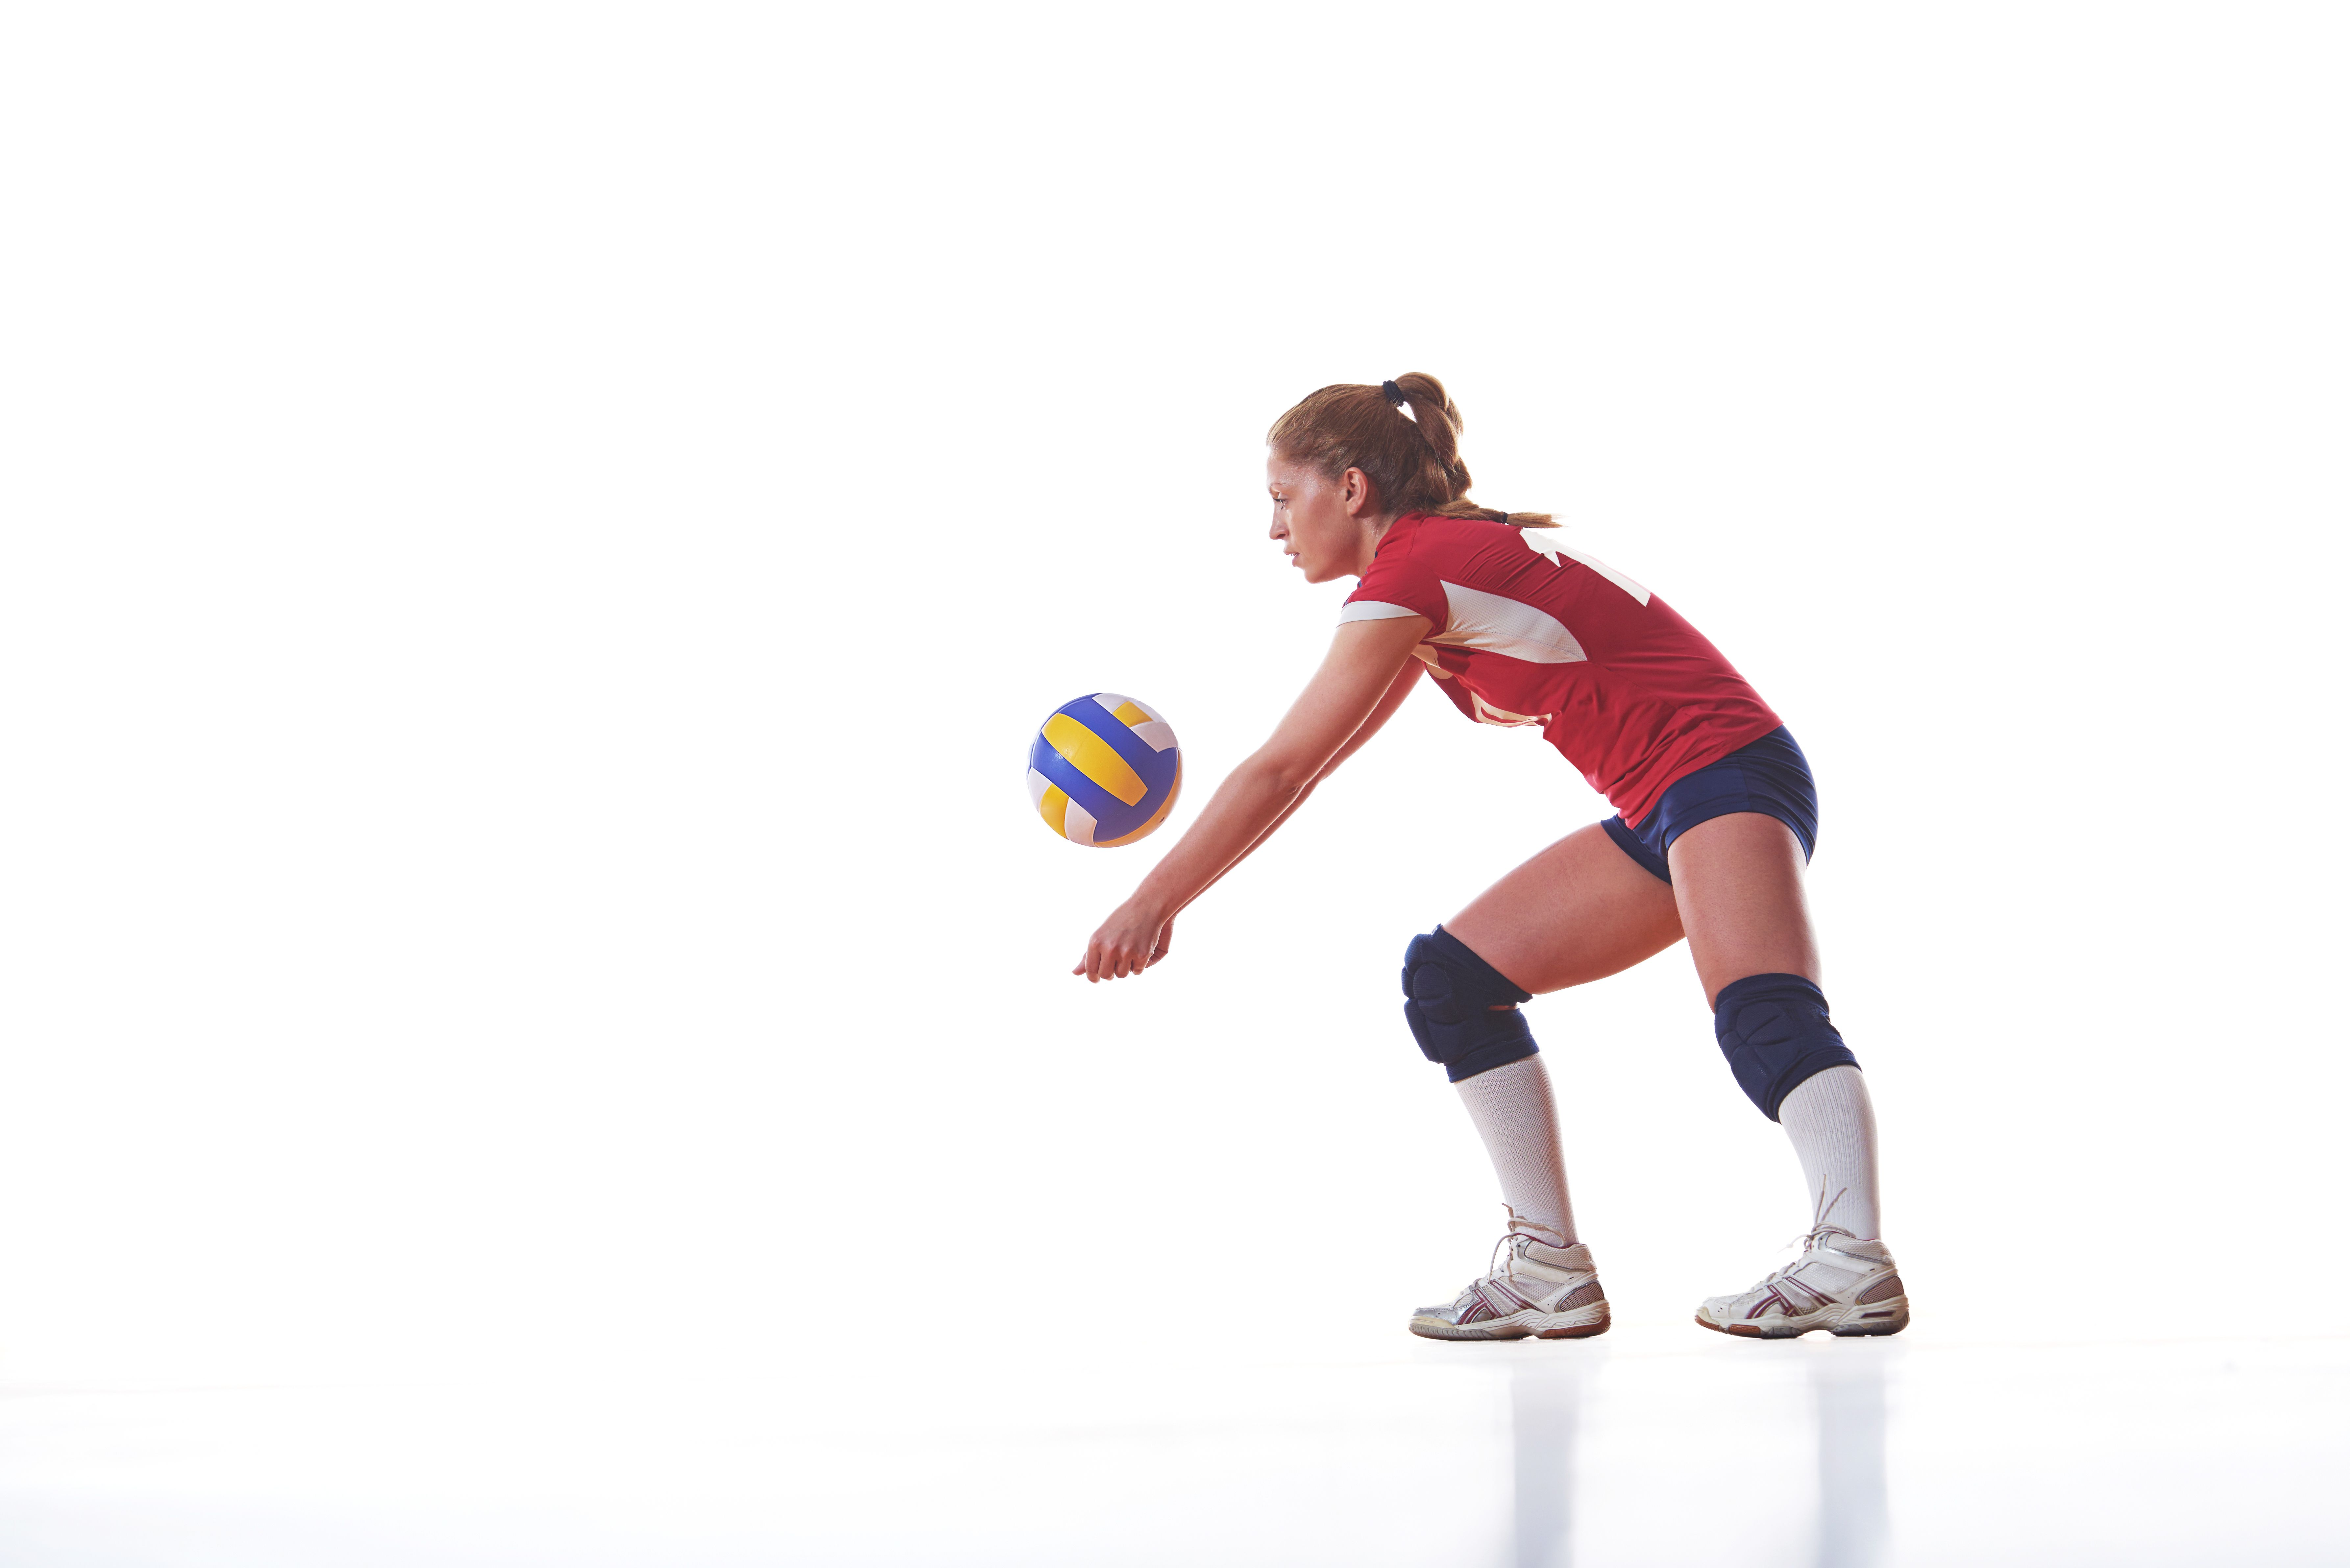 Three Principles For Solid Statistics Volleyball Tips Youth Sports World Of Sports